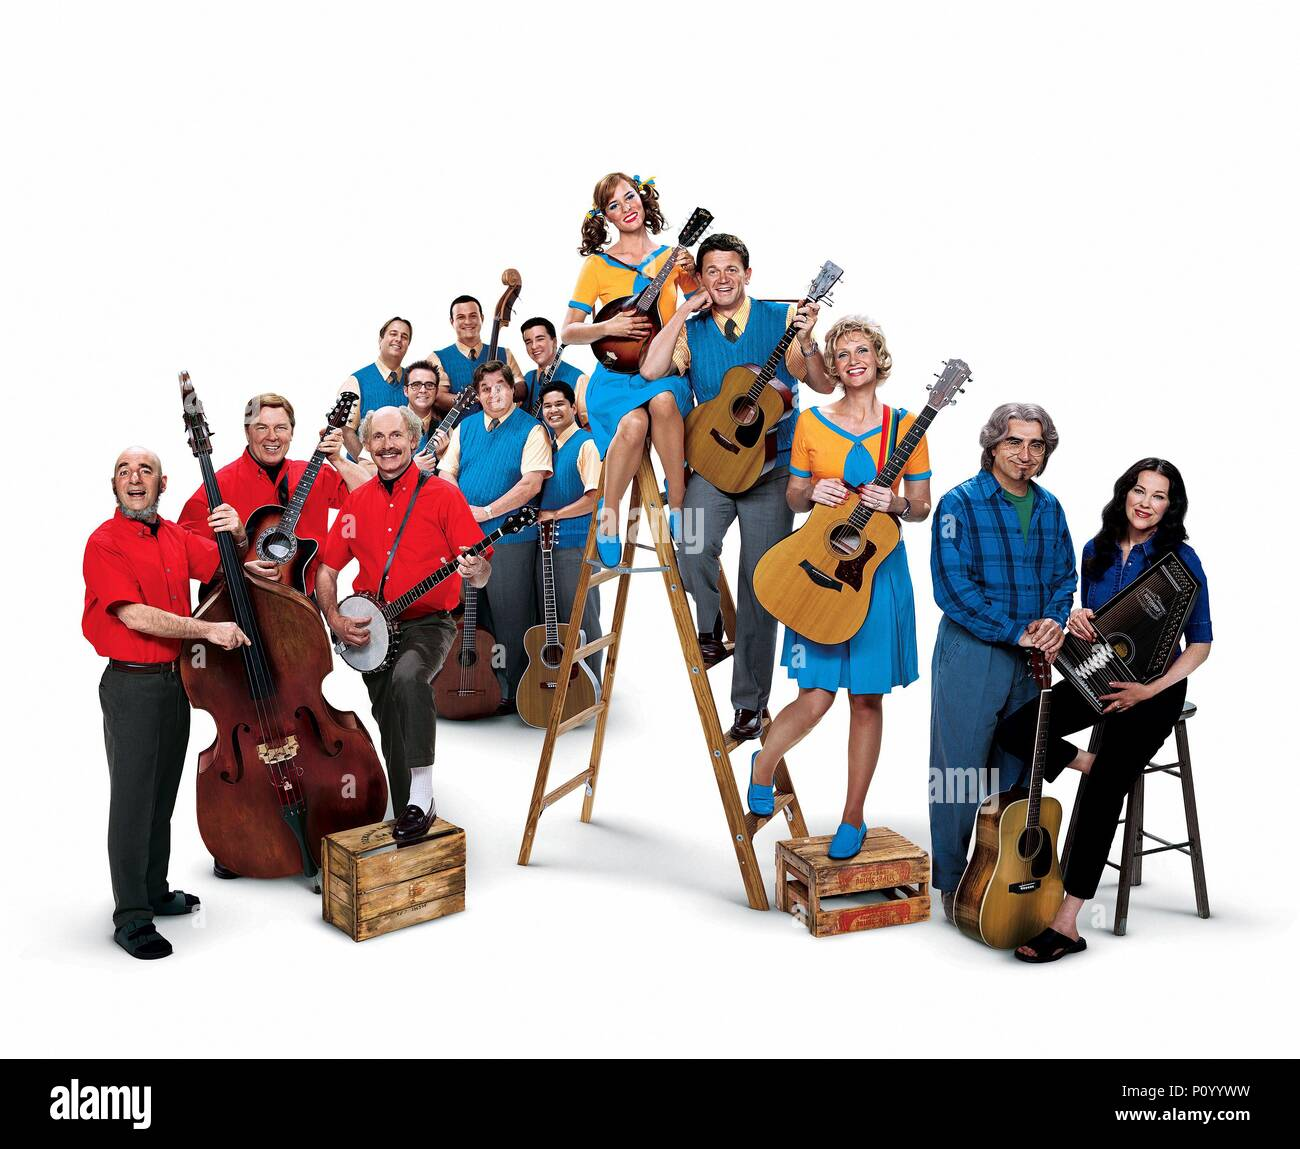 Original Film Title: A MIGHTY WIND.  English Title: A MIGHTY WIND.  Film Director: CHRISTOPHER GUEST.  Year: 2003. Credit: CASTLE ROCK ENTERTAINMENT / Album - Stock Image